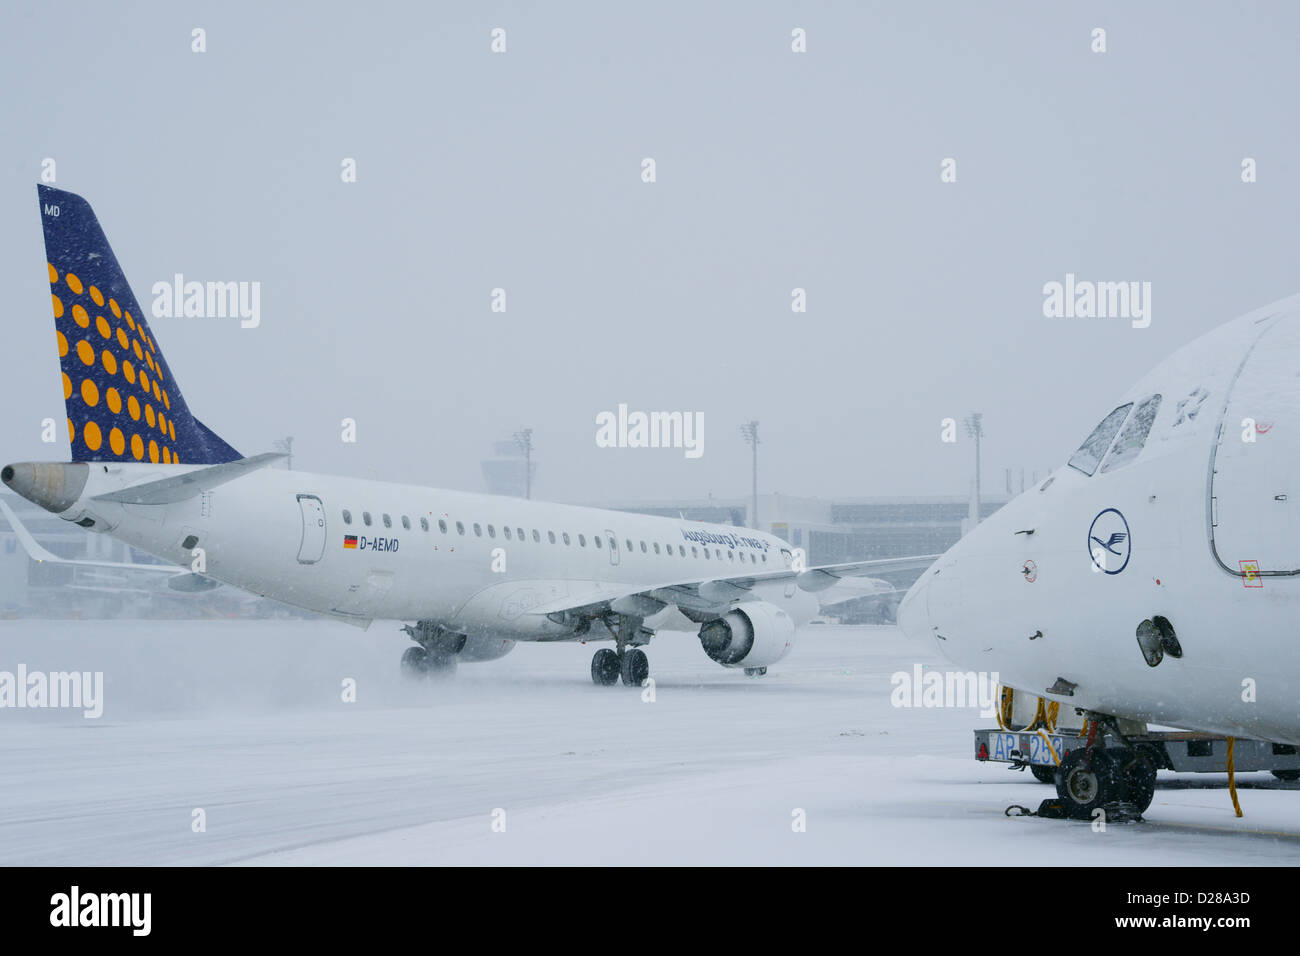 Aircraft, in, Winter, Snow, Munich Airport, MUC - Stock Image